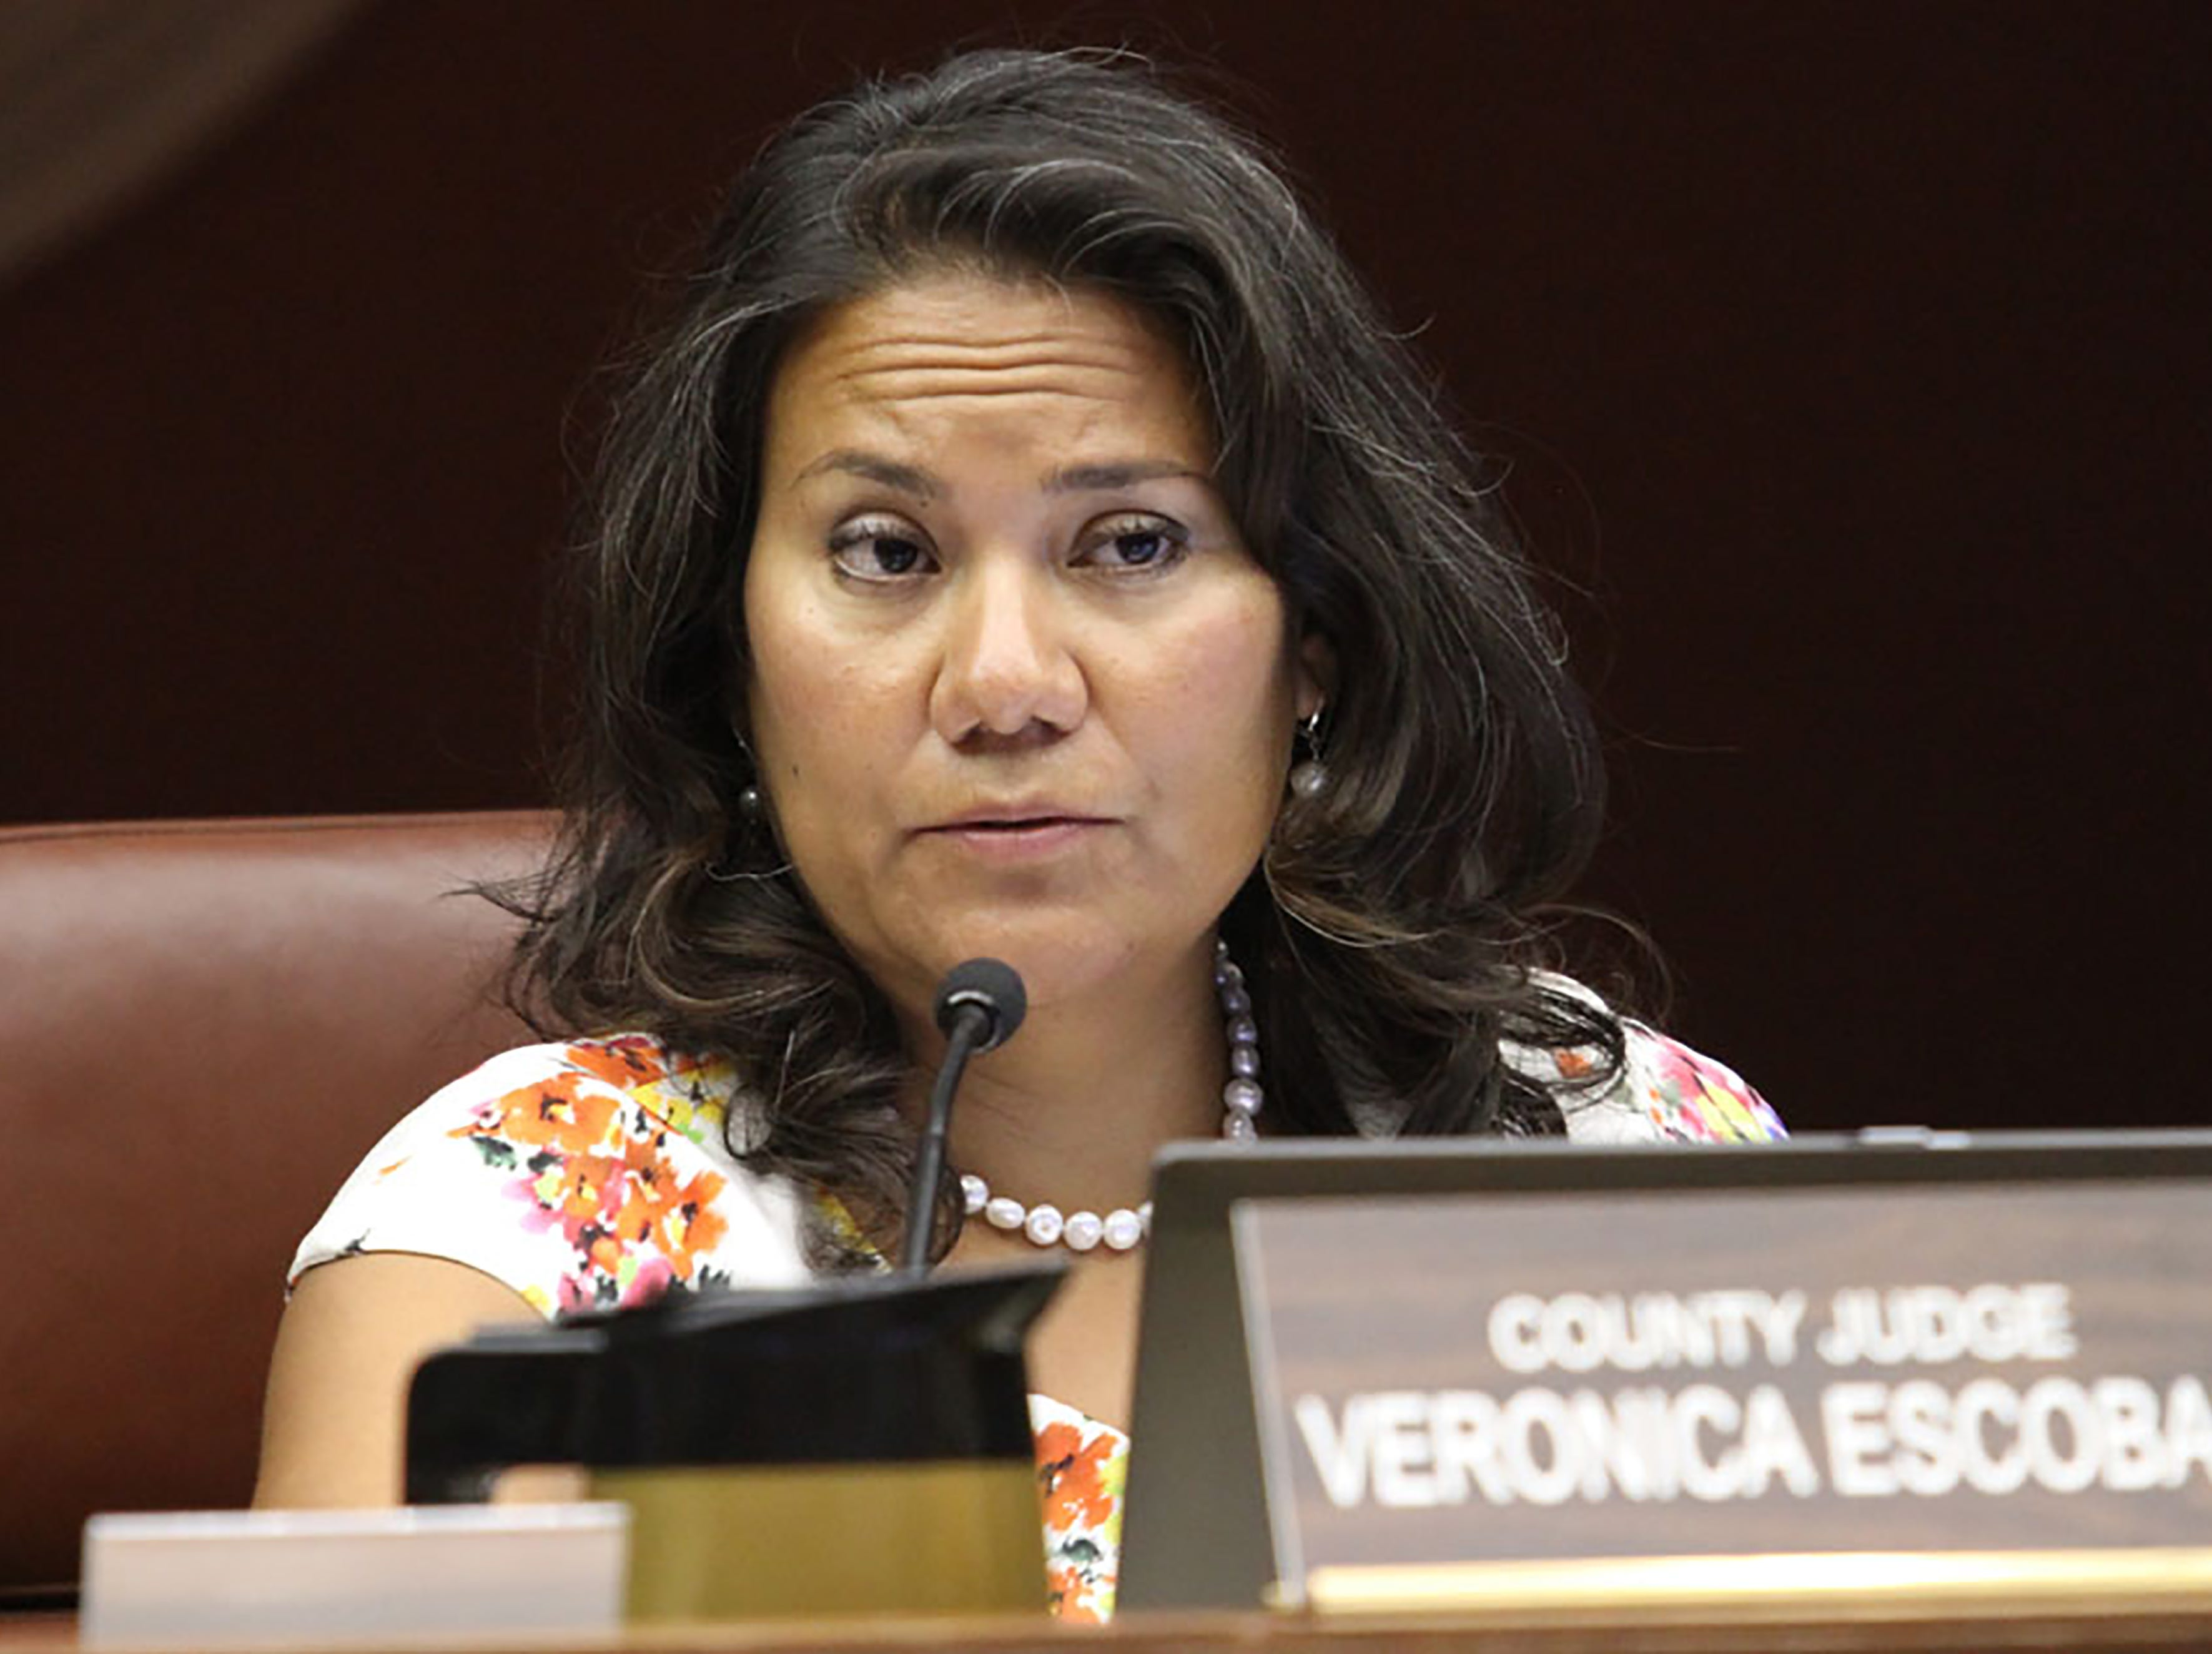 County Judge Veronica addresses a speaker during commissioners court.